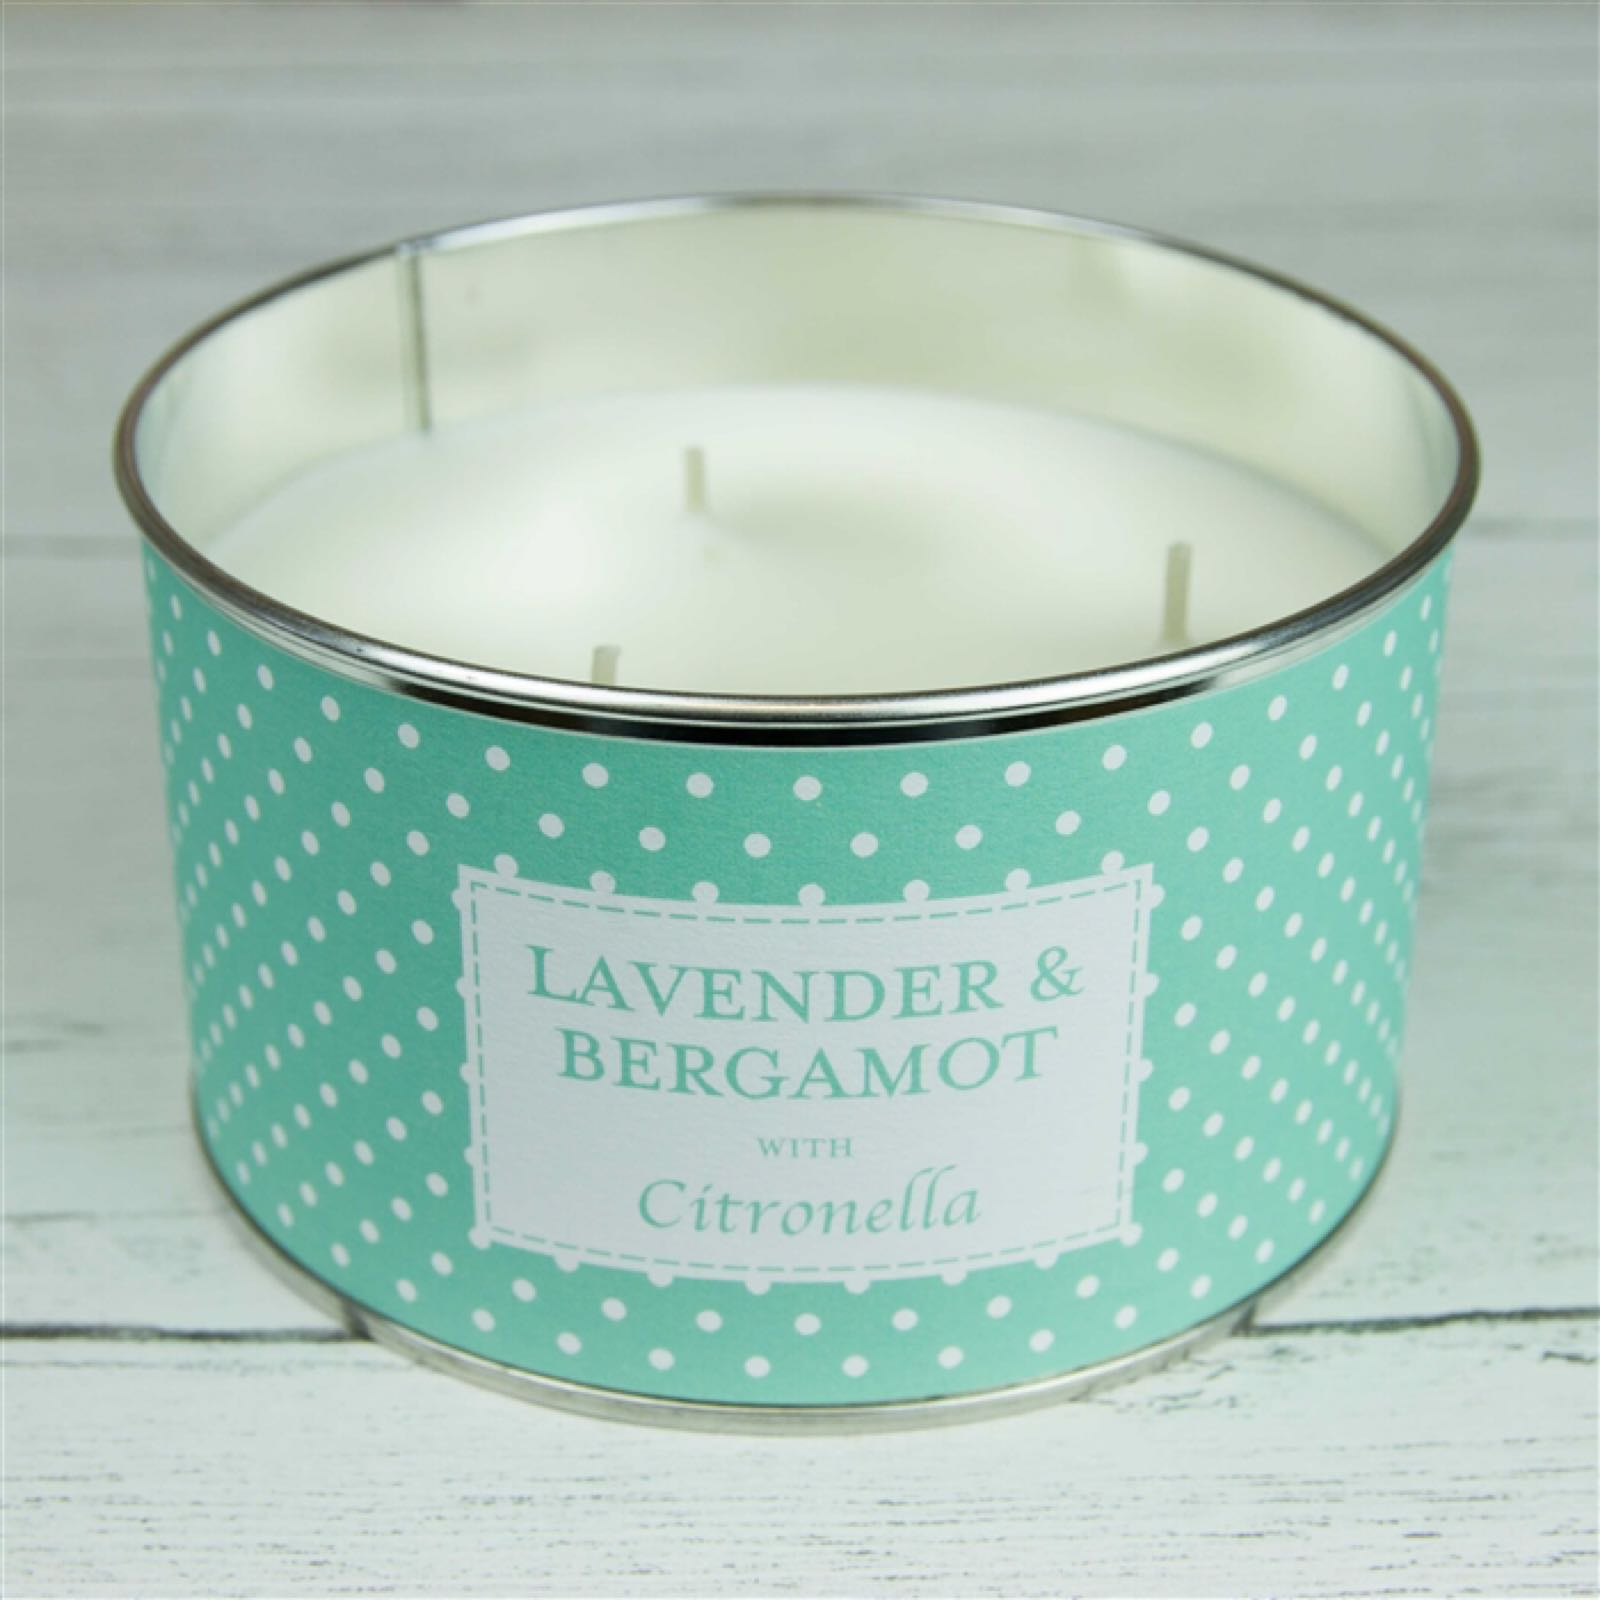 'Lavender & Bergamot' Triple Wick Candle in a Tin